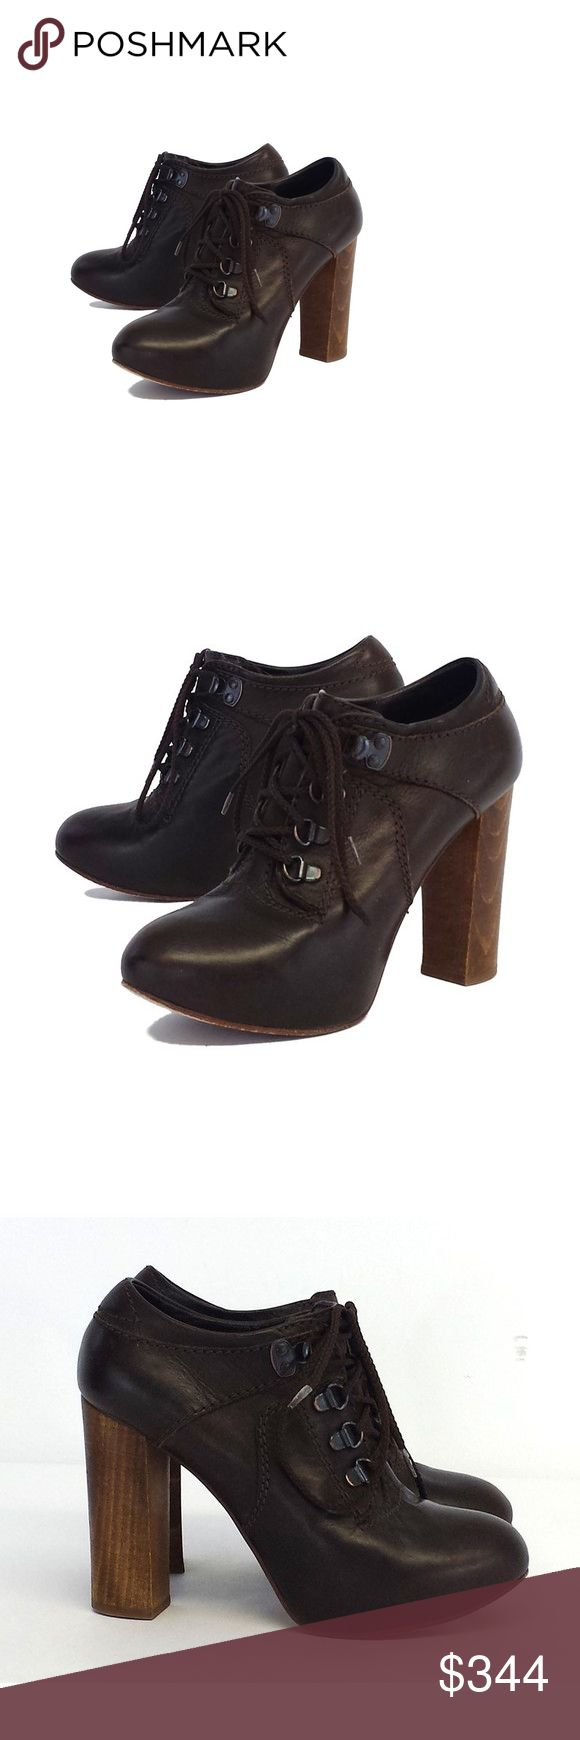 Chloe- Brown Leather Lace Up Ankle Booties Sz 6.5 Chloe is a French fashion house that has been in the business for decades.  Chloe prides itself in luxury ready-to-wear styles.  Along with their ready-to-wear line, they also offer accessories, formal wear, fragrances and See by Chloe. Chloe Shoes Ankle Boots & Booties